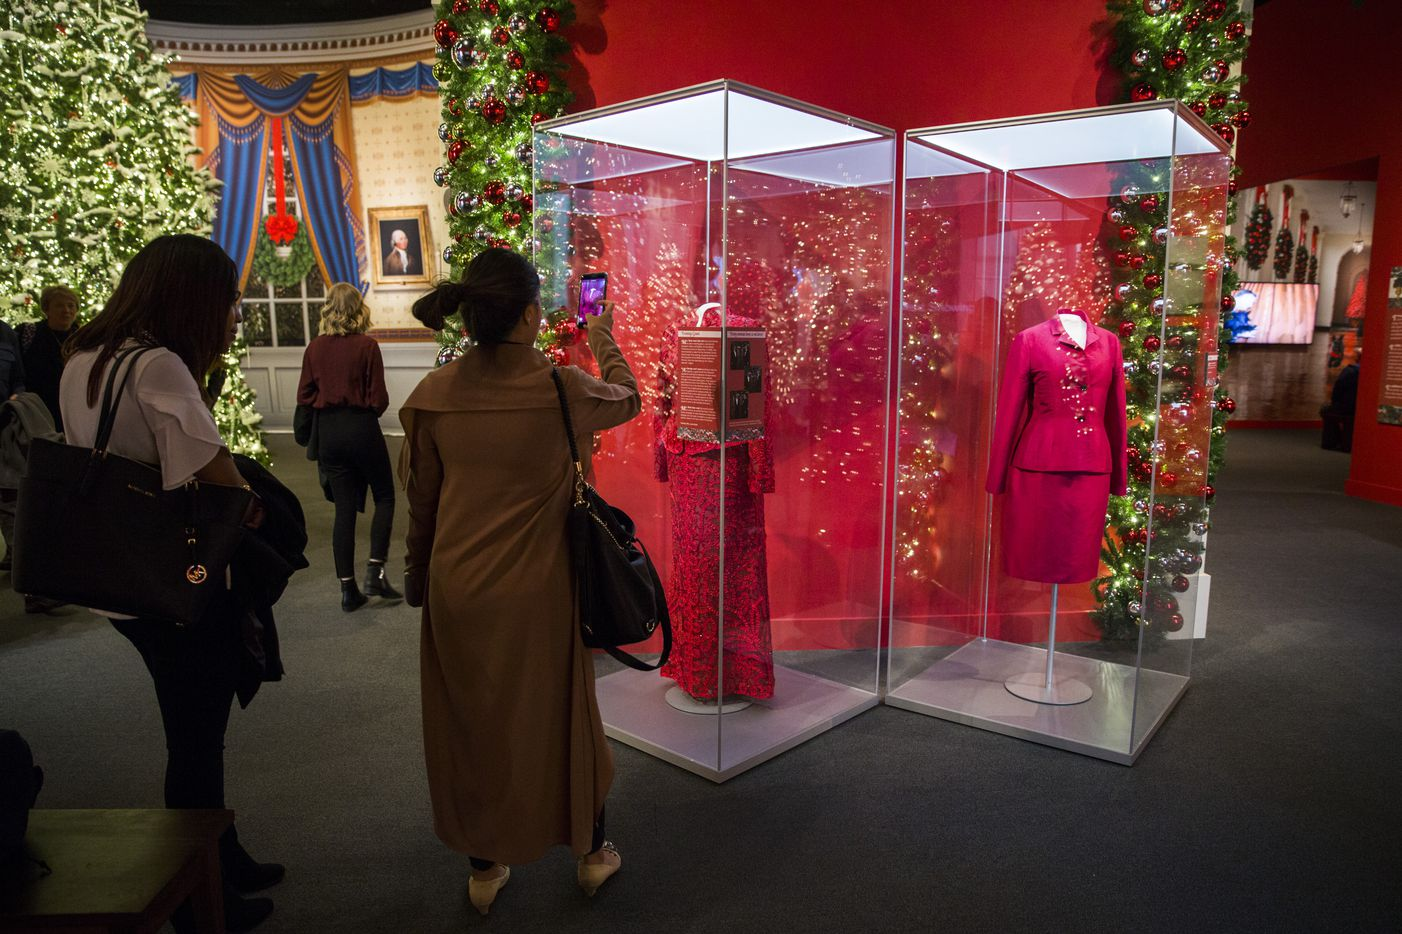 Visitors take photos of a red Oscar de la Renta evening gown worn by Laura Bush is displayed at a Christmas exhibit at The George W. Bush Presidential Center and Library on Thursday, November 15, 2018 on the SMU campus in Dallas. This year's theme is Deck the Halls and Welcome All: Christmas at the White House 2006. When the Bushes arrived at their White House Christmas party, Laura noticed three of her friends wearing the same dress. She changed clothes before the party. (Ashley Landis/The Dallas Morning News)